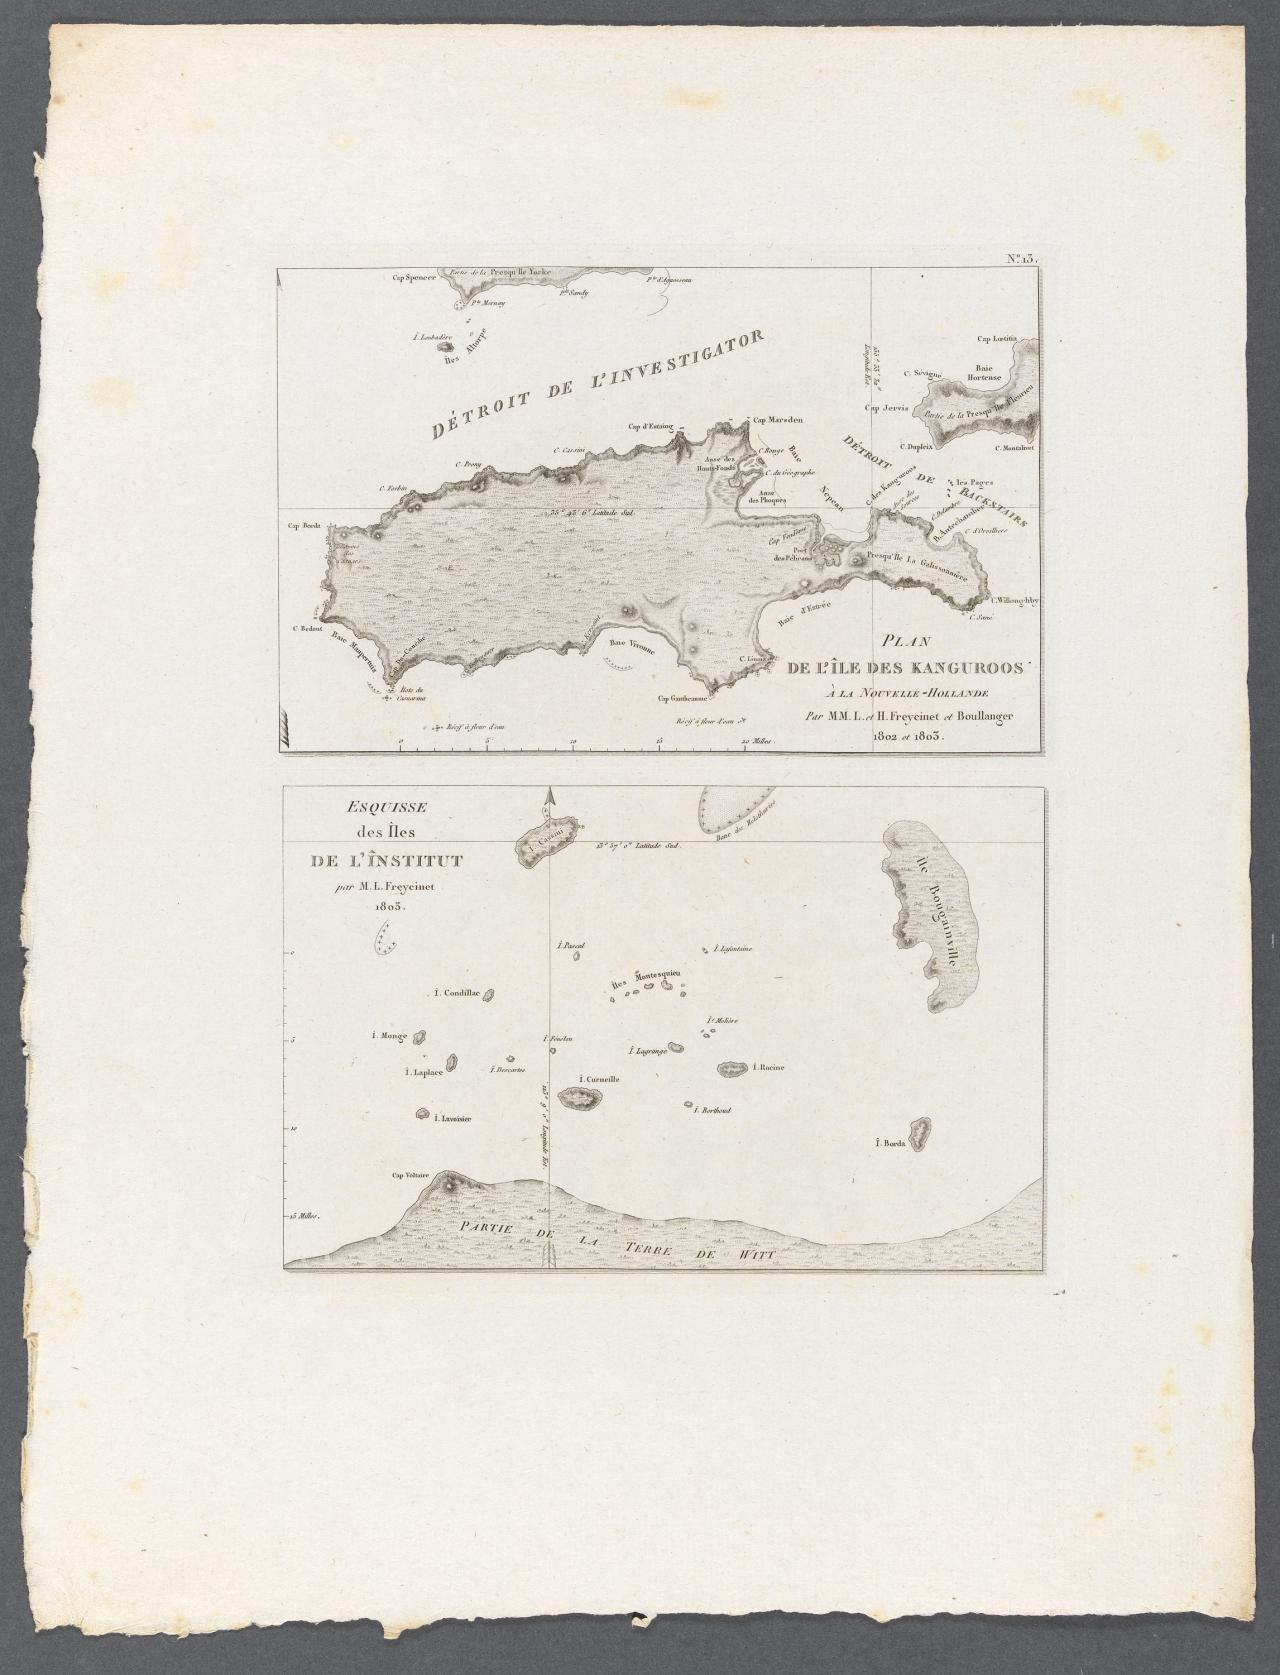 Plan of Kanagaroo Island, off the sounth-west coast of New Holland (by Louis and Henri de Freycinet and Boullanger, 1802 and 1803) Sketch of the Institute Islands, De Witt's Land (By Louis de Freycinet and Faure, 1801 and 1803)